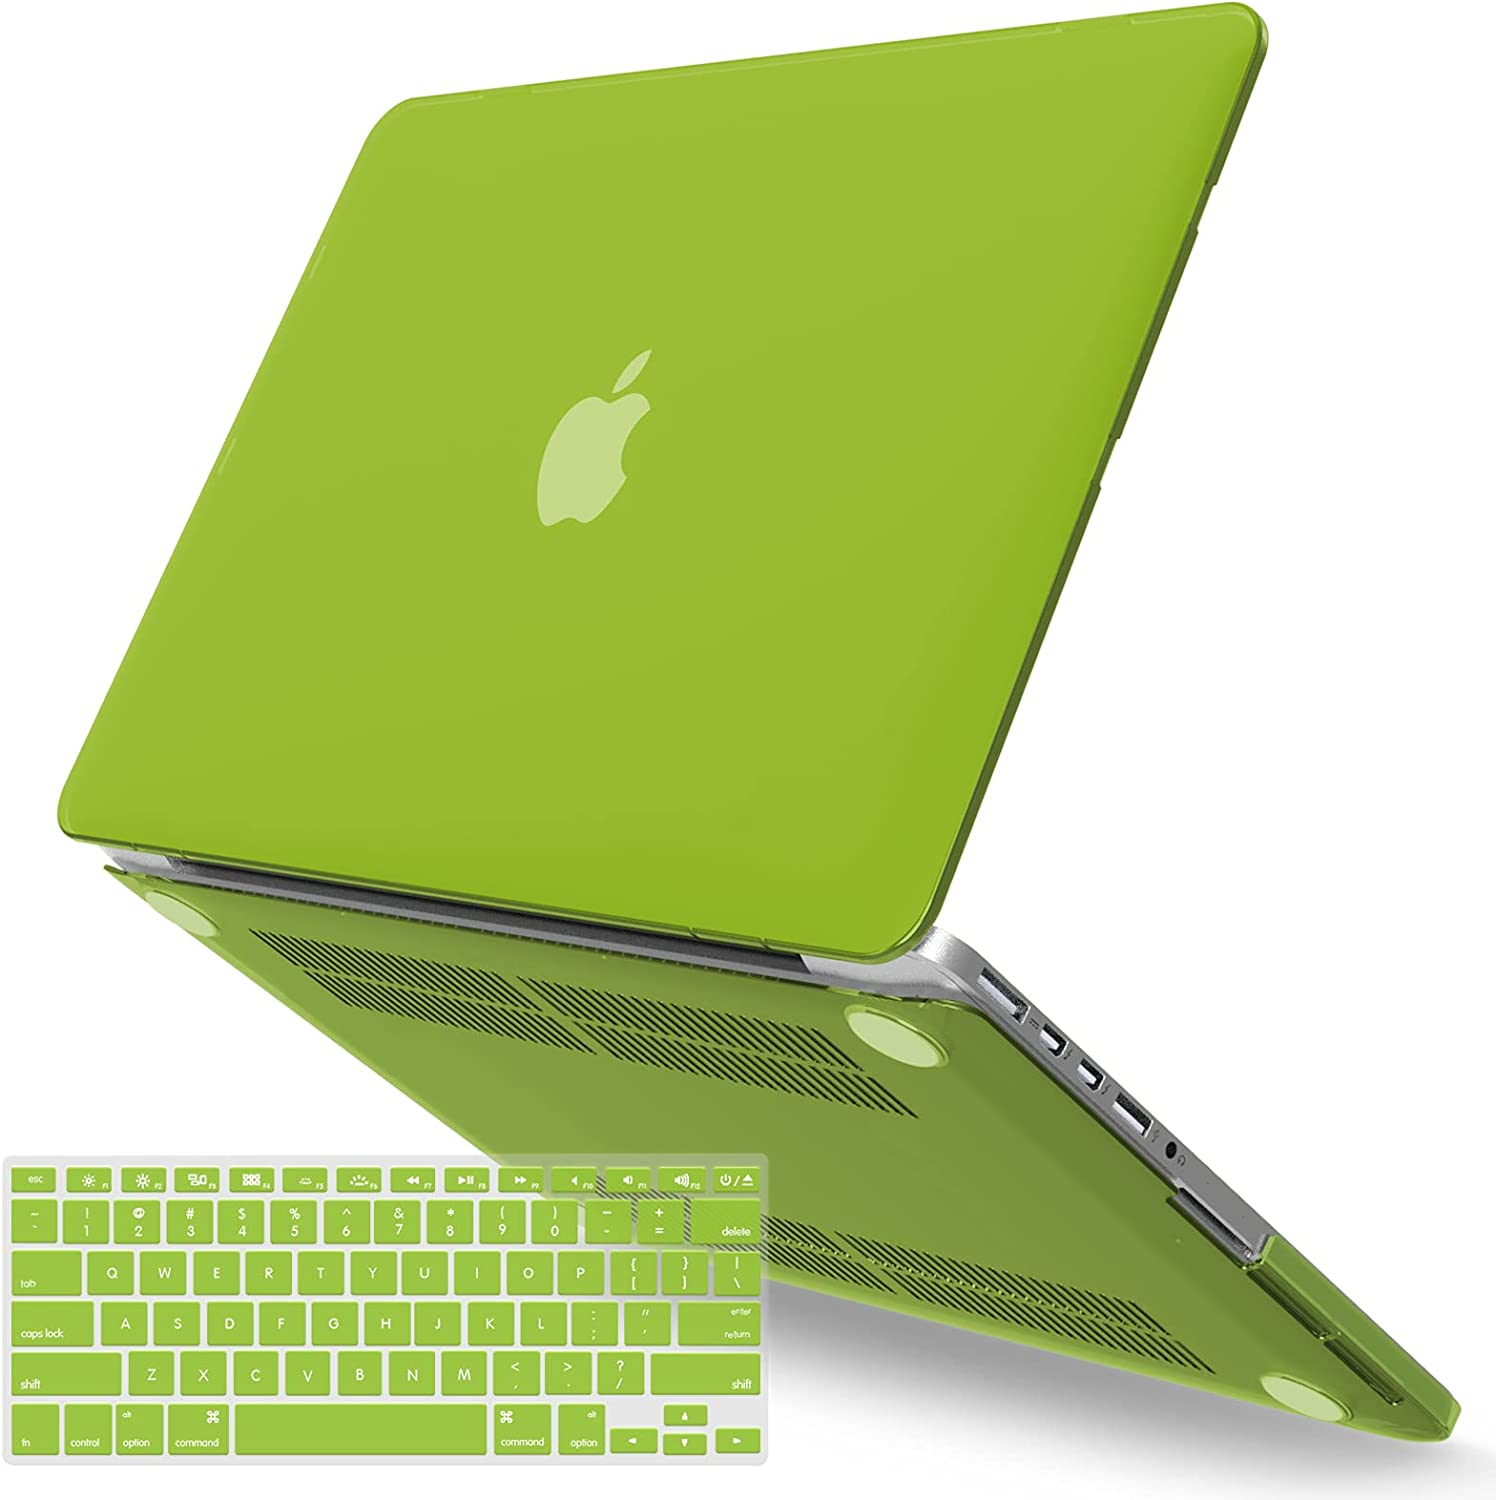 IBENZER MacBook Pro 13 Inch Case 2015 2014 2013 end 2012 A1502 A1425, Hard Shell Case with Keyboard Cover for Old Version Apple Mac Pro Retina 13, Avocado Green, R13AVGN+1